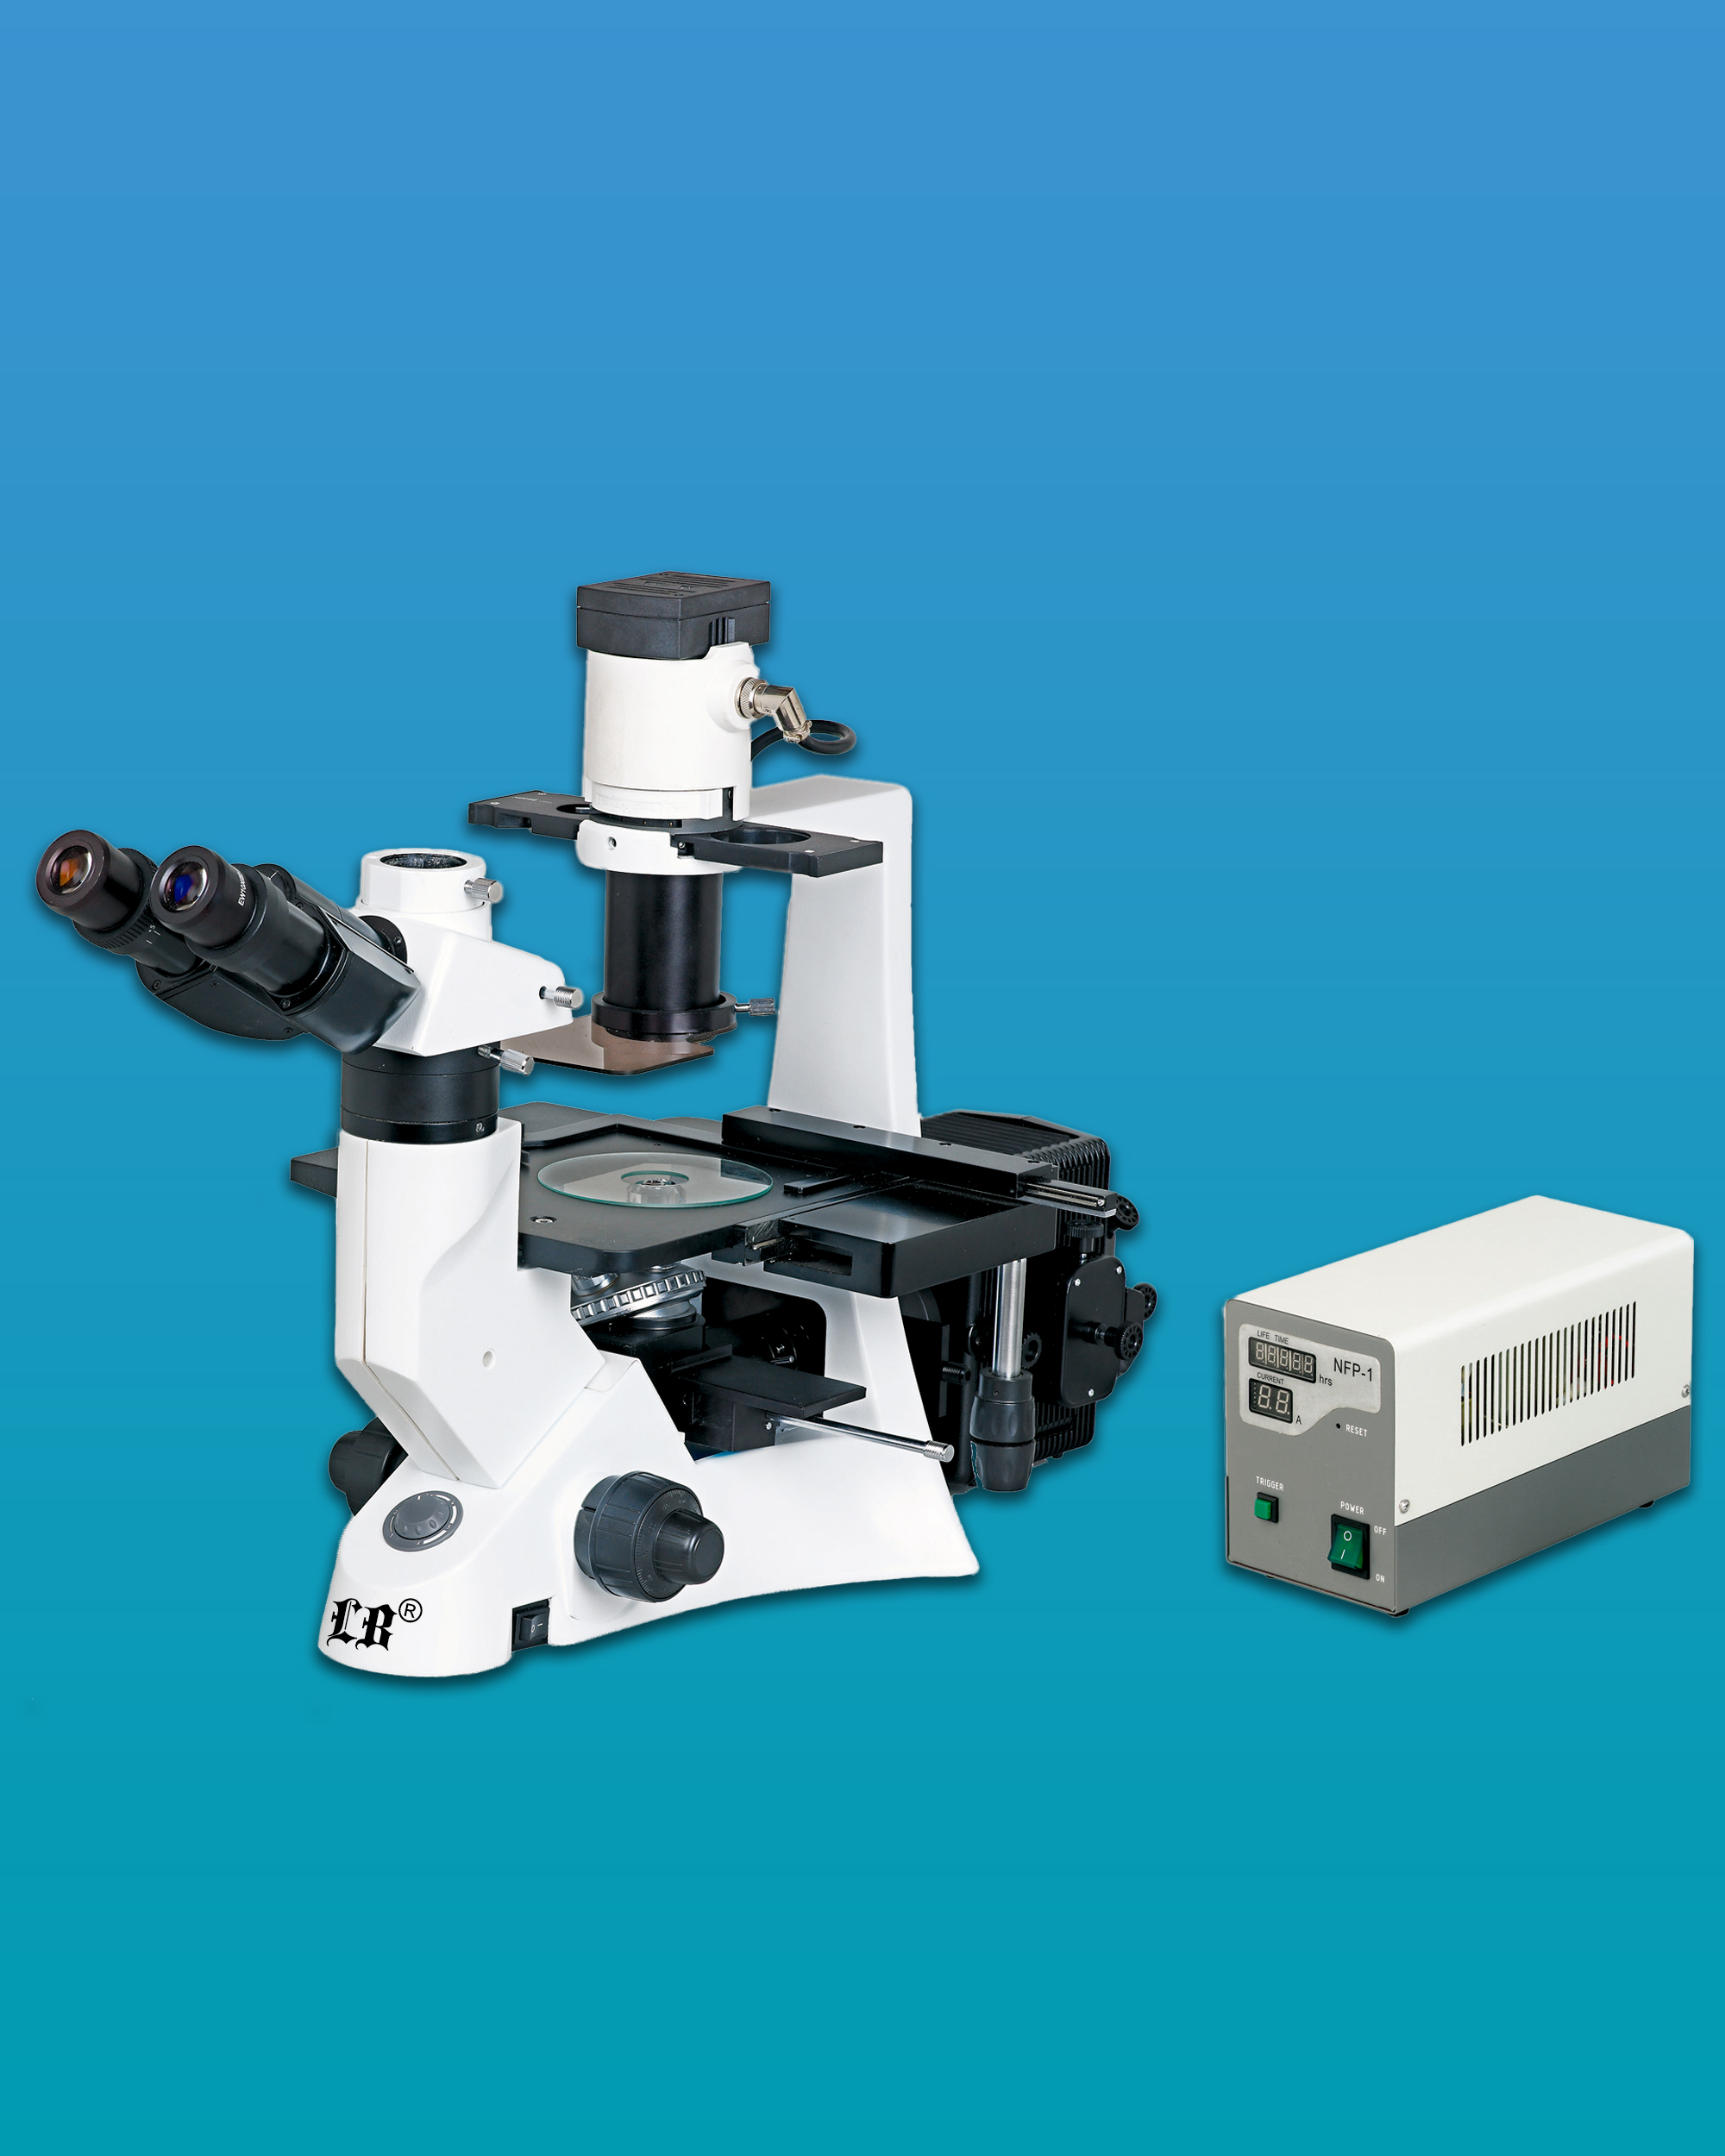 [LB-702] Inverted Trinocular Flourescent Biological Microscope w/ Infinite Optical System